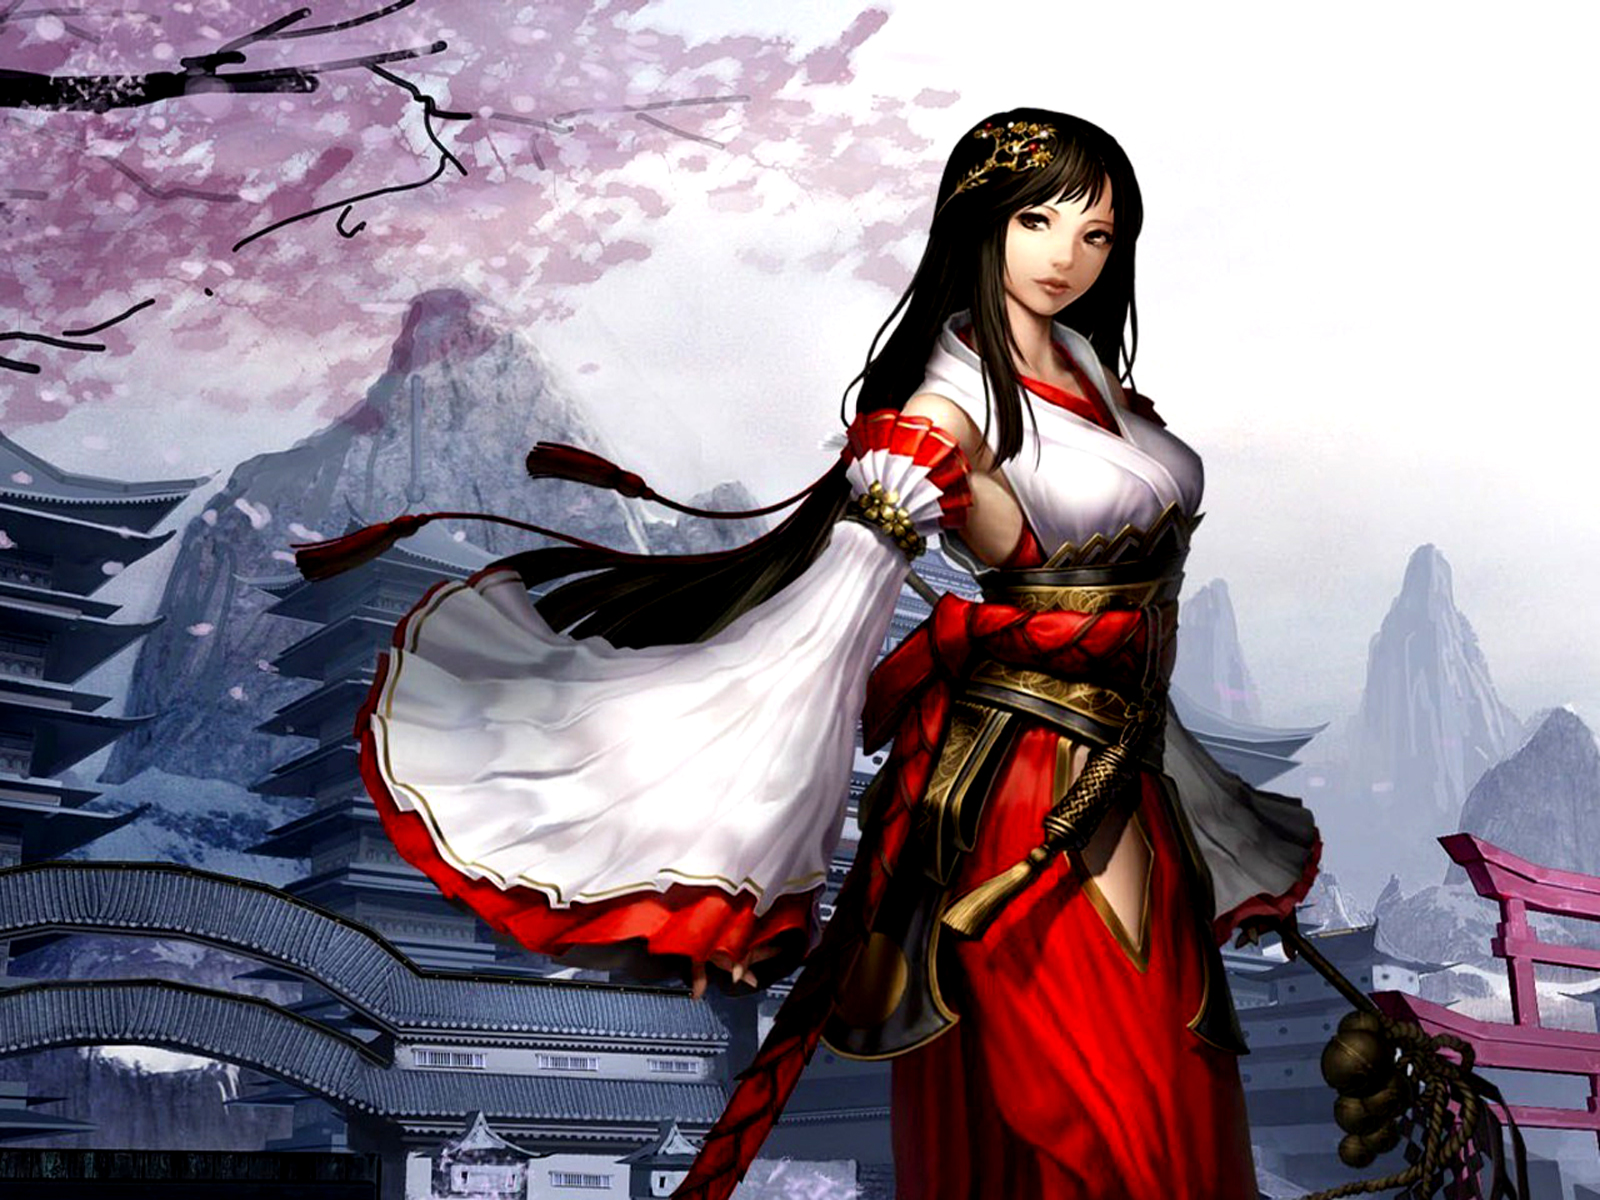 Atlantica wallpaper and background image 1600x1200 id - Anime female warrior ...